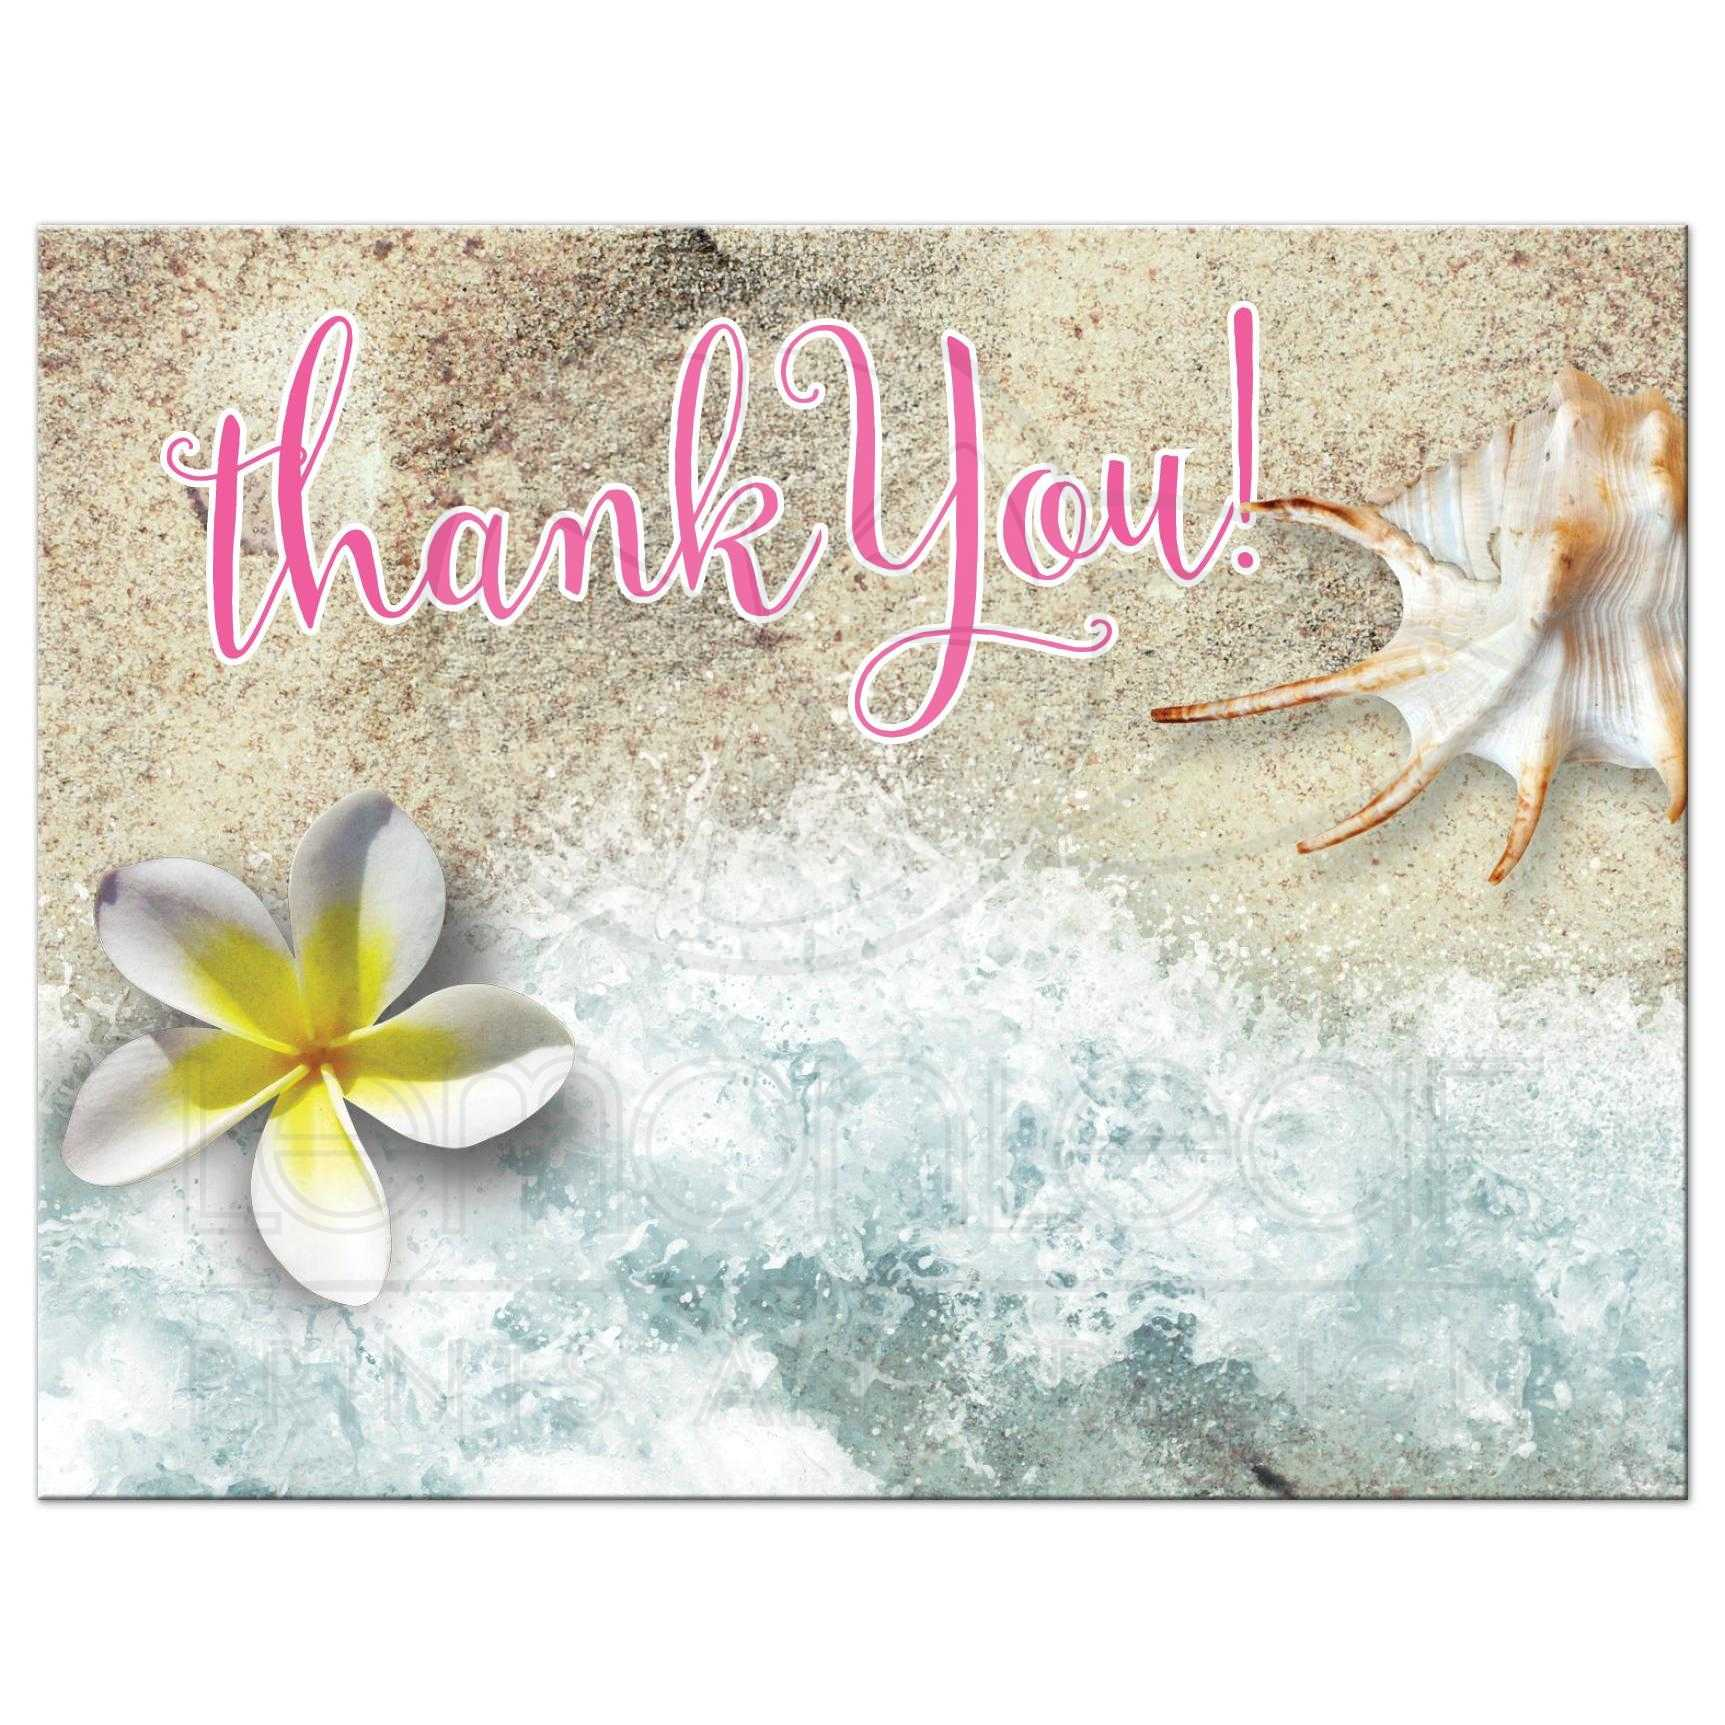 by the beach thank you postcard frangipani seashell